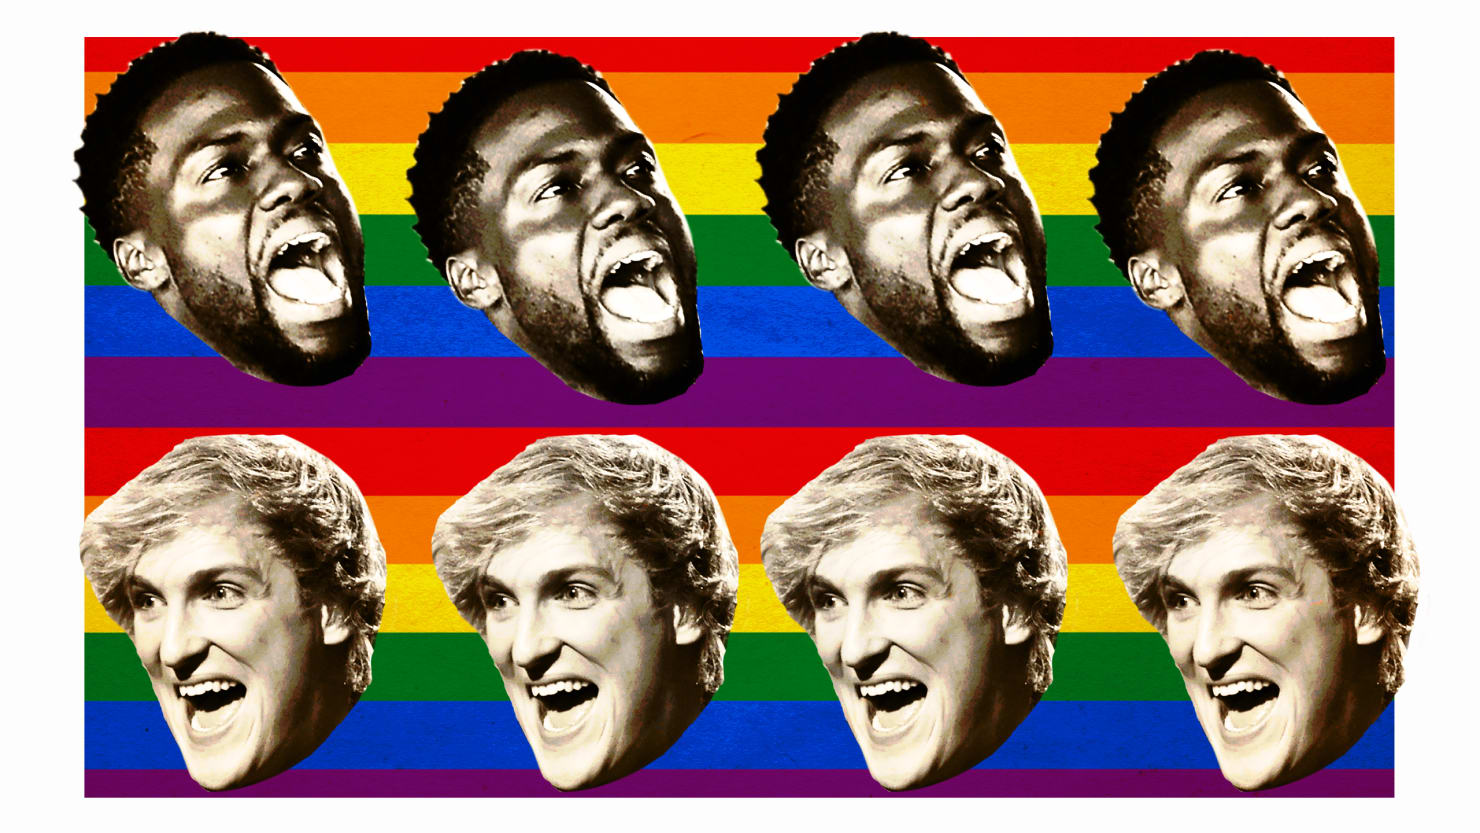 Gee Thanks Logan Paul And Kevin Hart For That Exhausting Week Of Gay Stupid